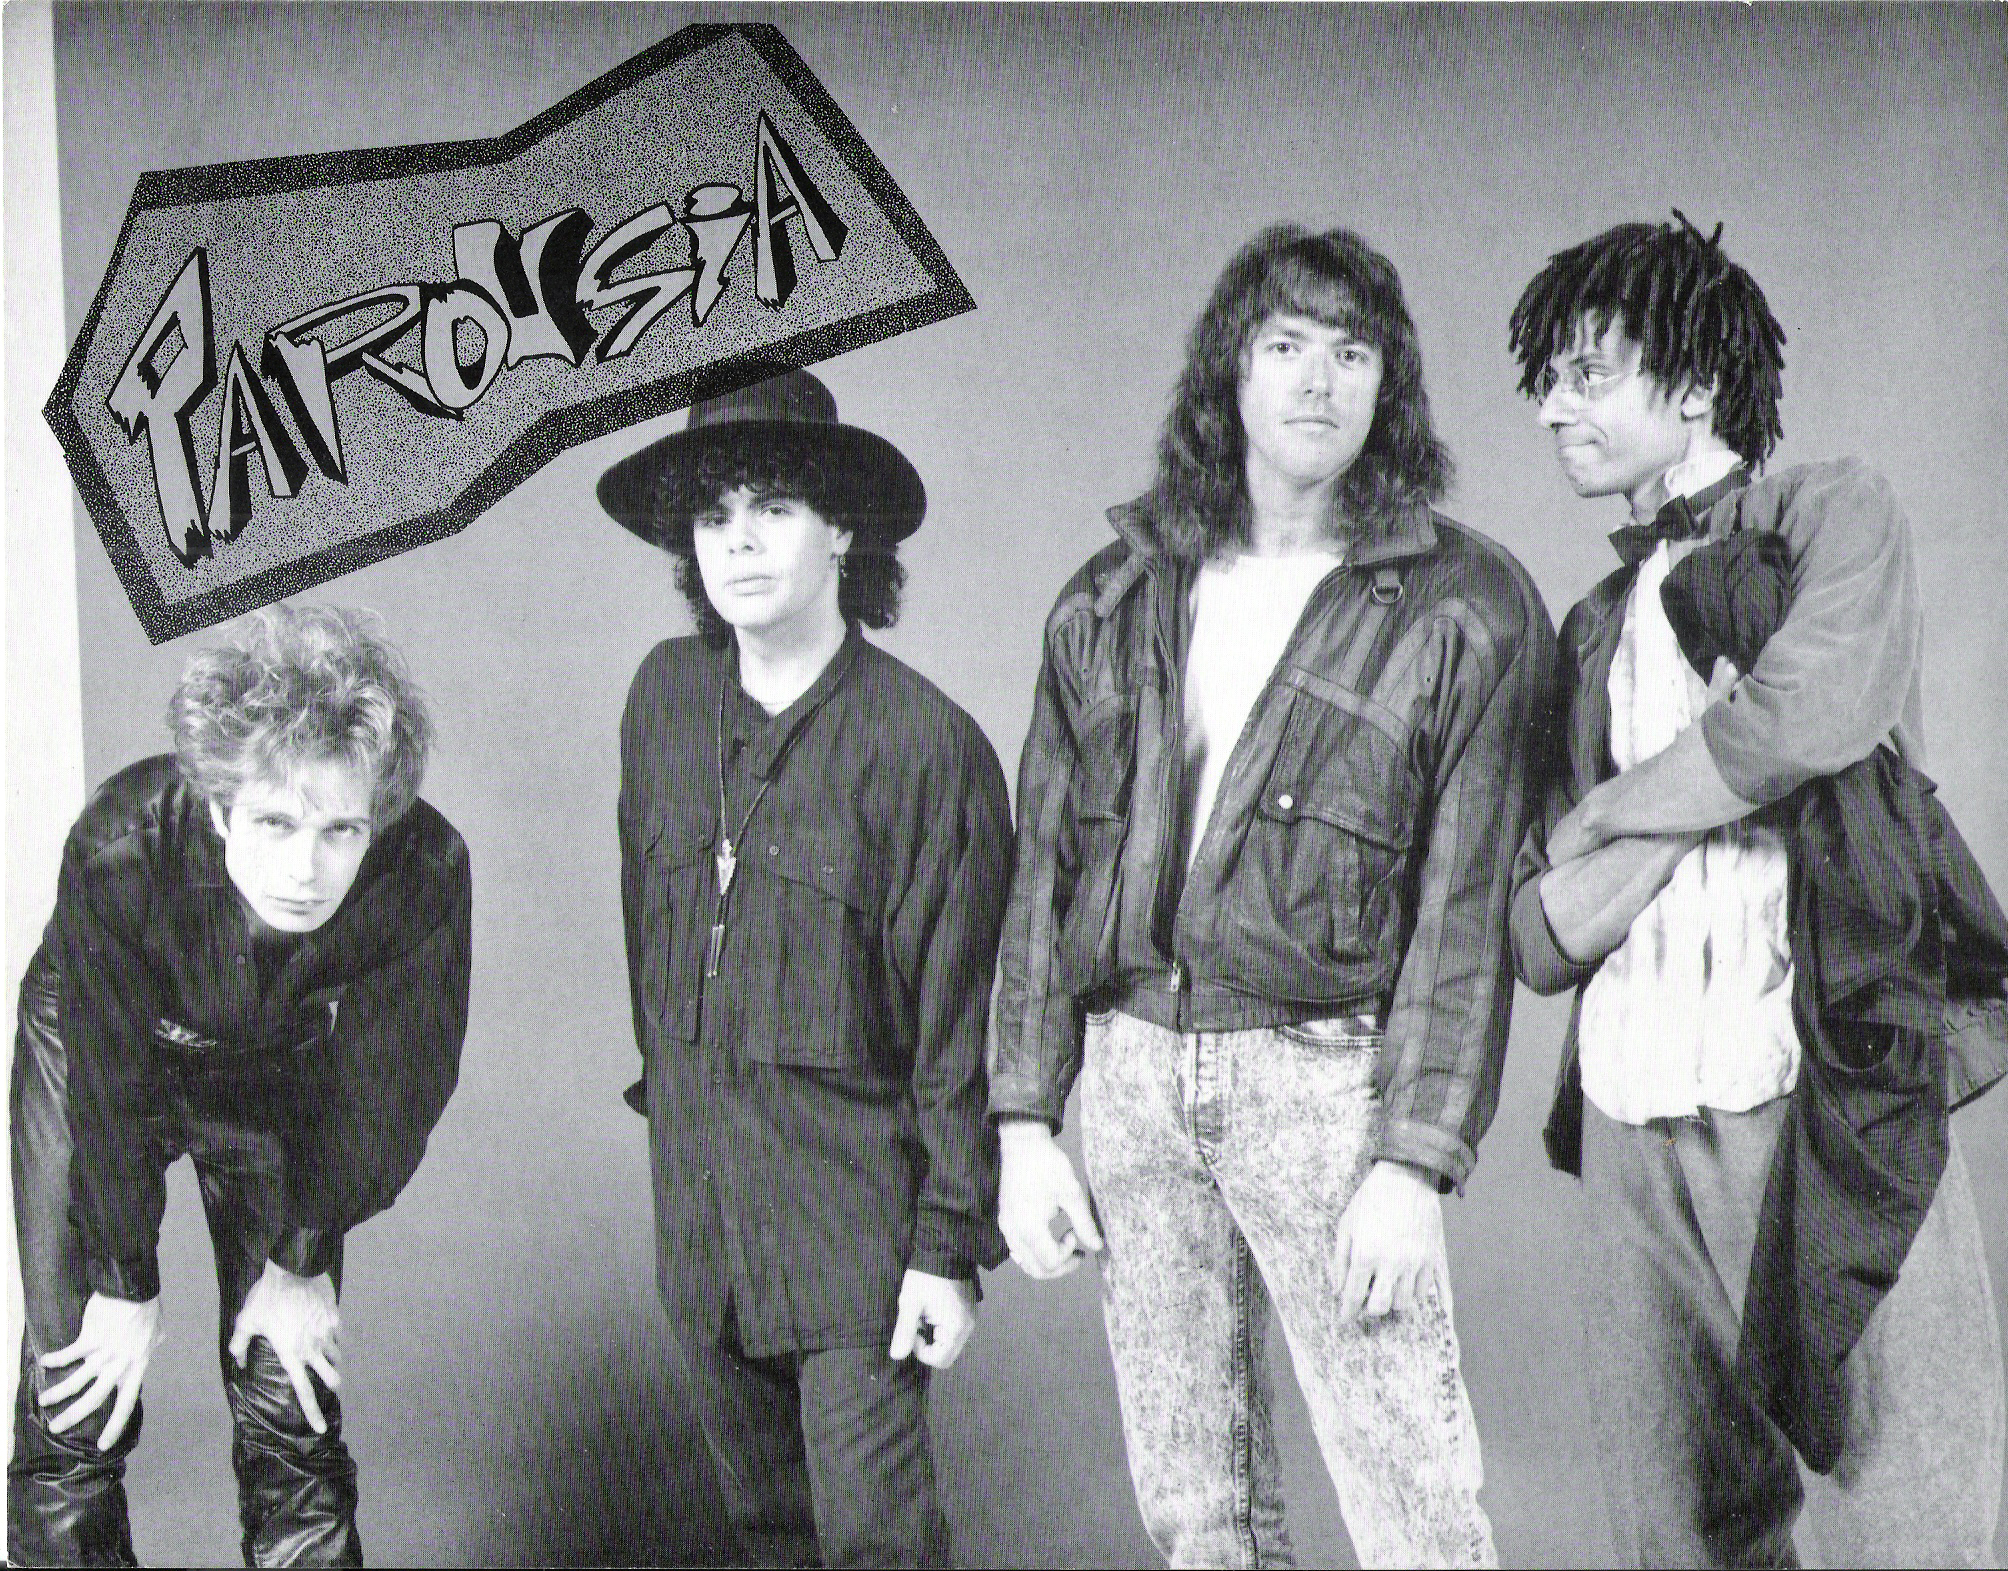 Parousia 1989: Patt Connolly, Gerry Cannizzaro, Marty Leggett, Robert Lowden